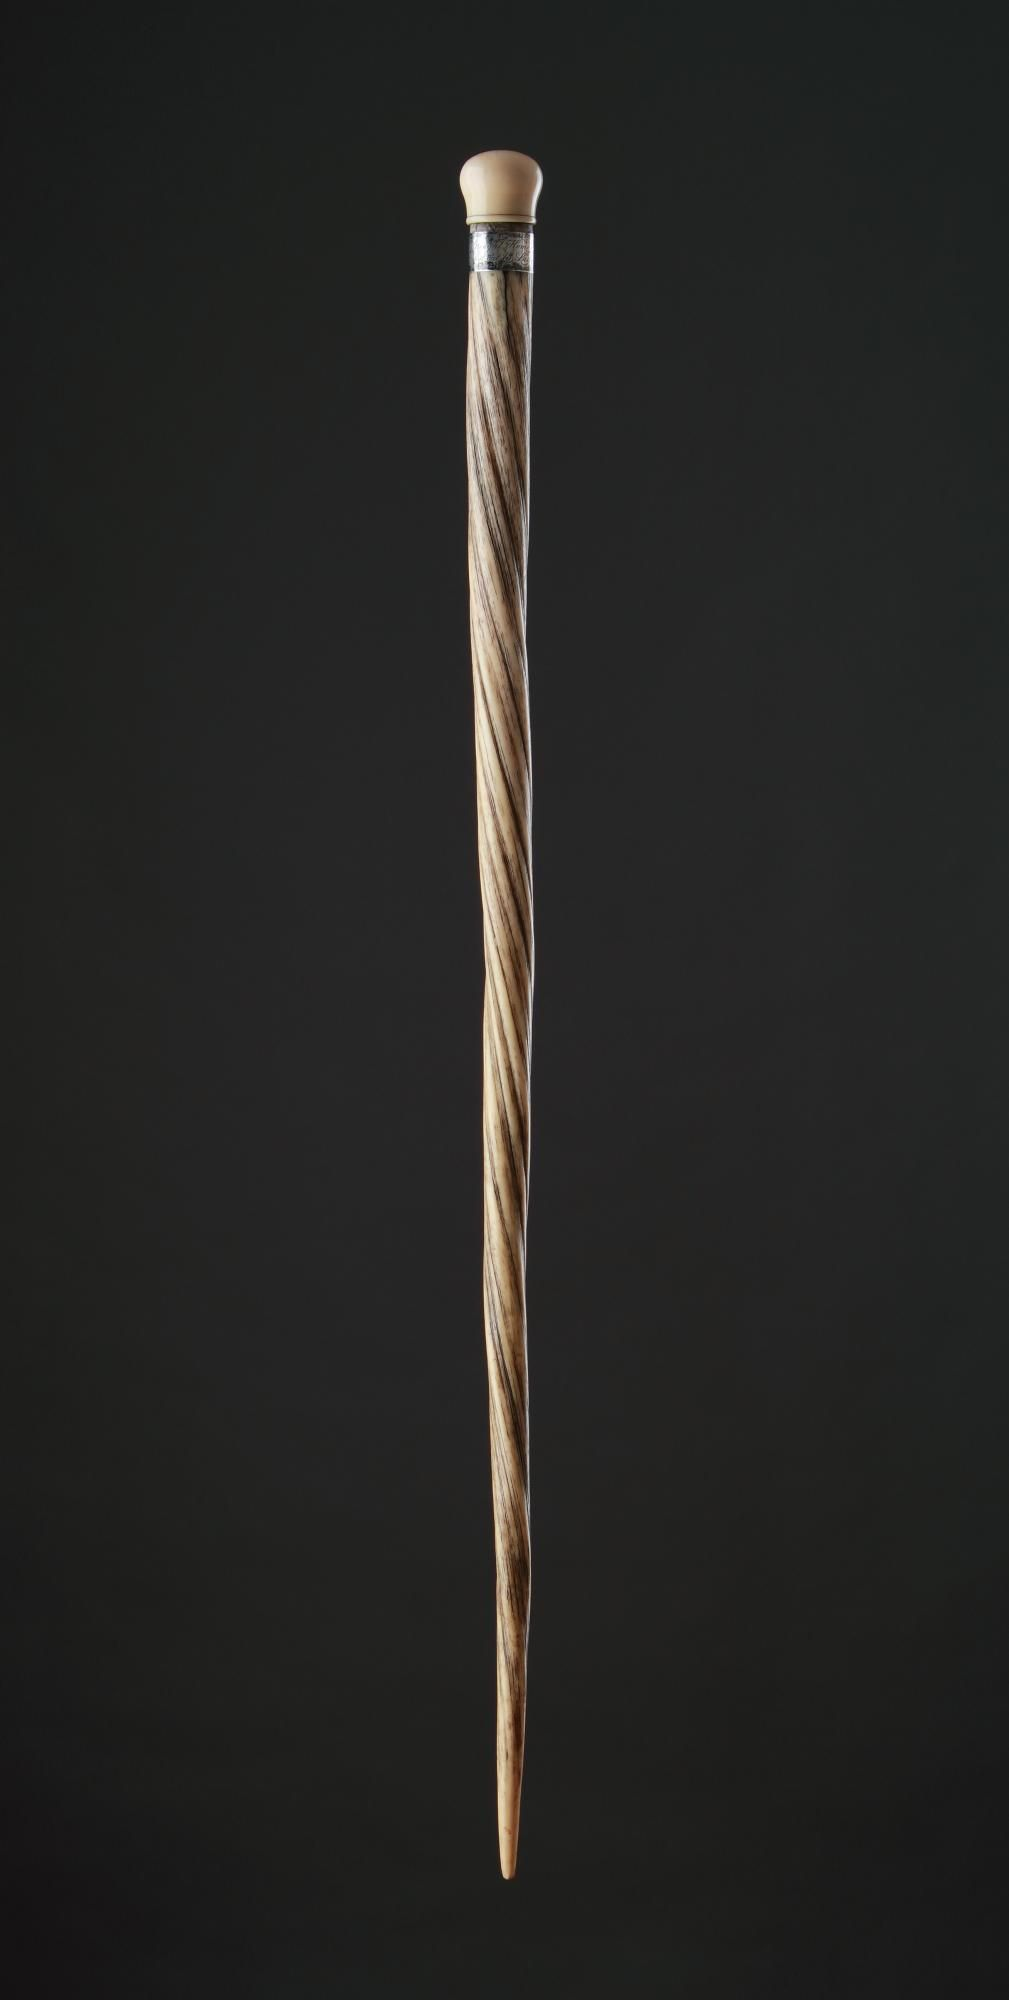 A highly important Narwhal Sailors' Cane with silver mounting and walrus ivory top that unscrews to form a small container for holding snuff etc. Being offered at auction on 20 May 2014, lot 118